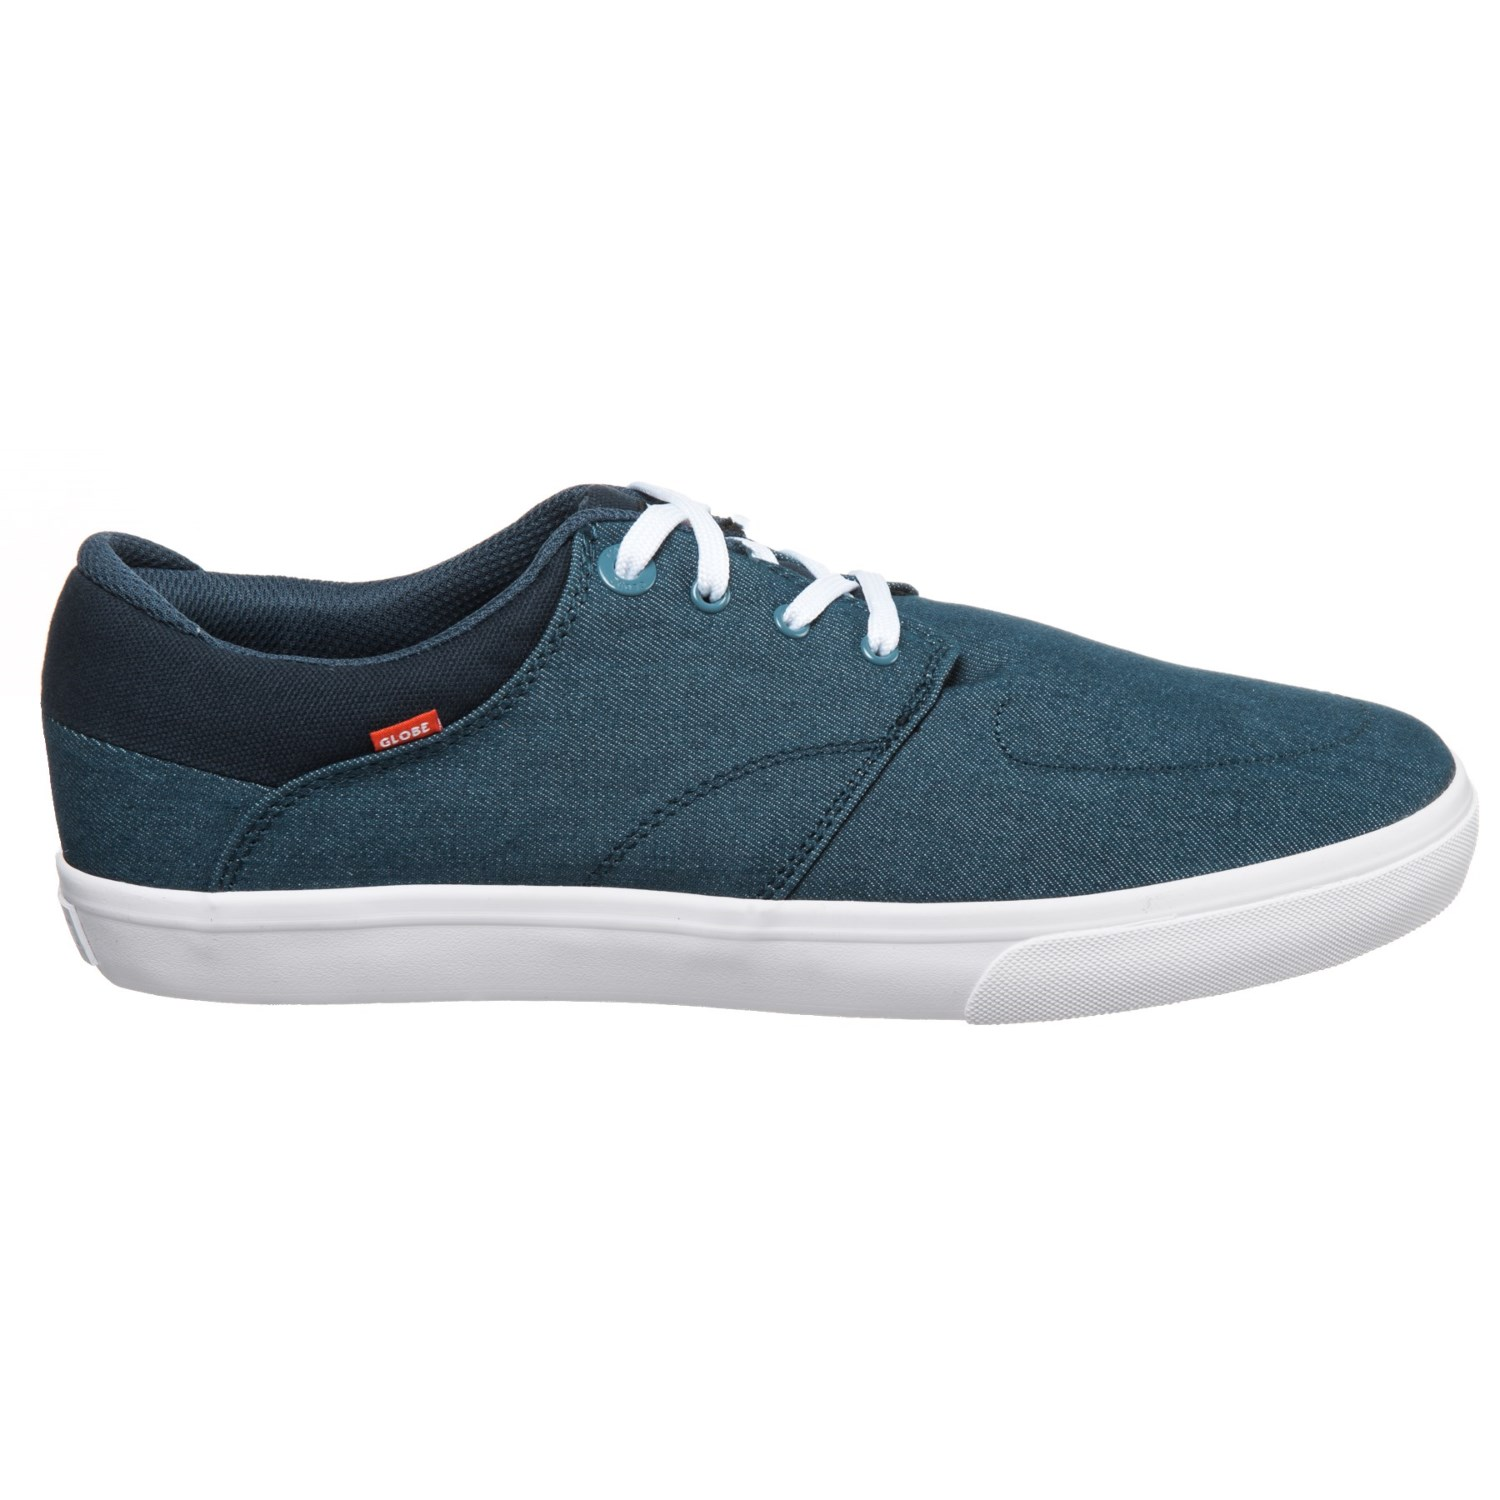 Chase Suede Shoe Blue Twill Globe 12eEHCjQ3D